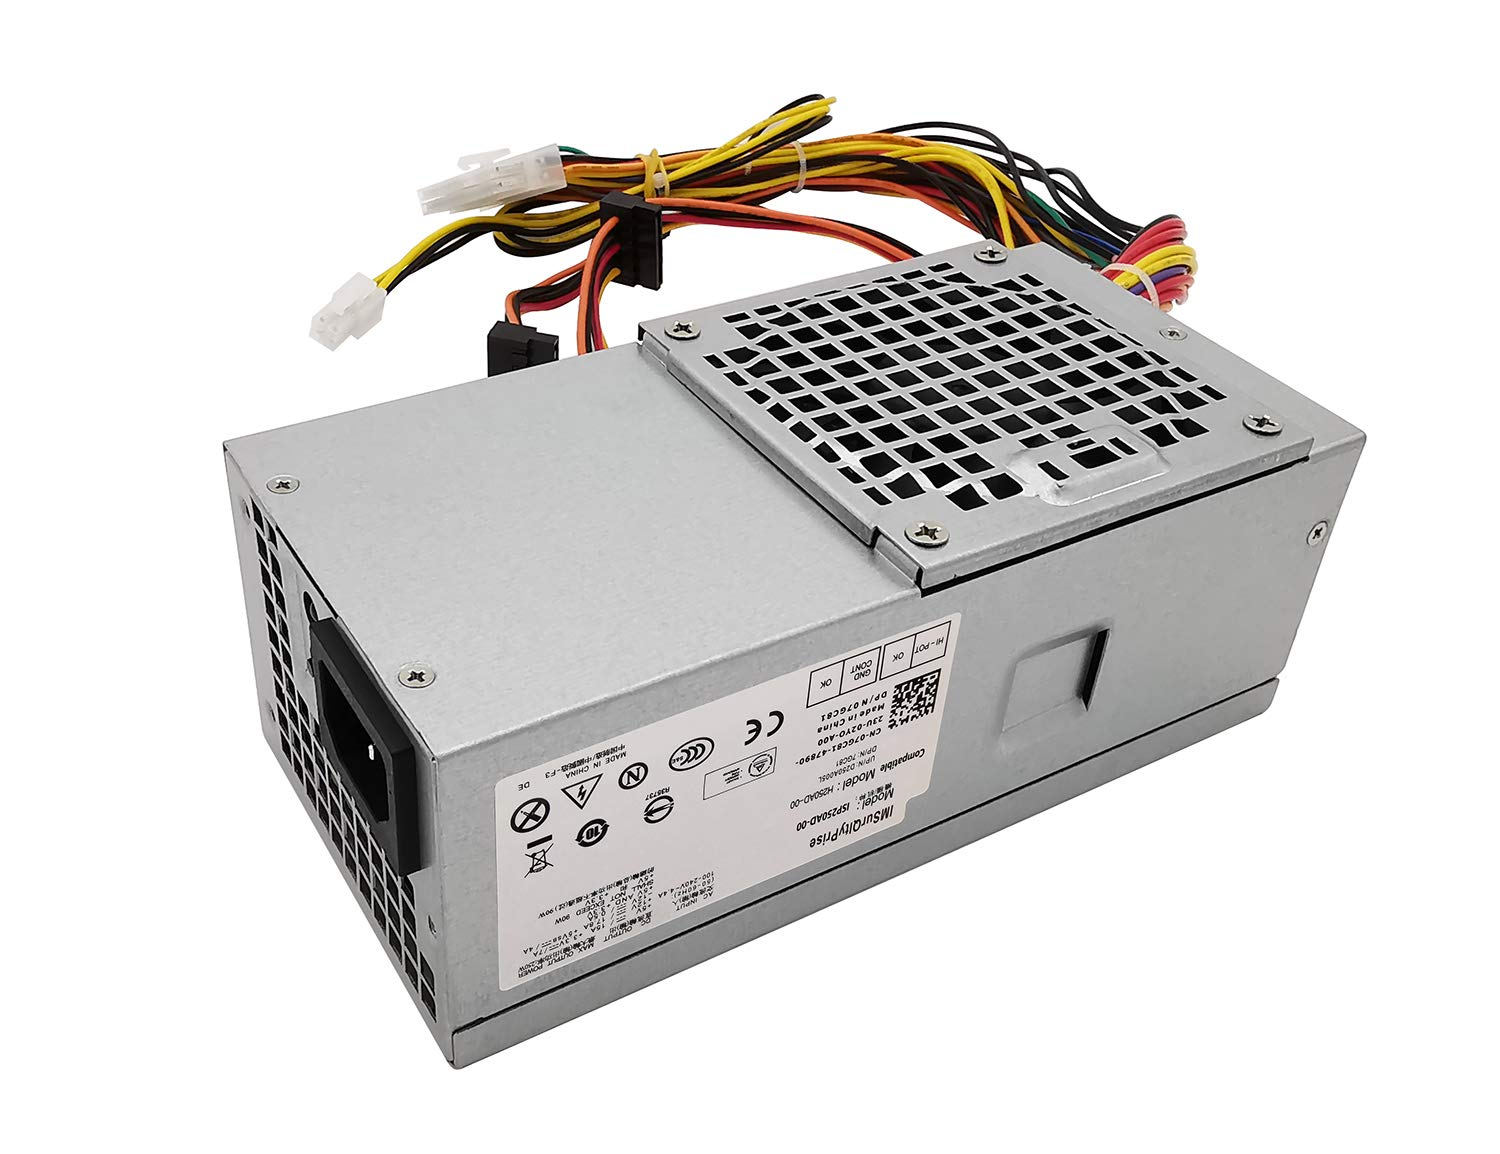 D250AD-00 H250AD-00 250W Power Supply Compatible with Optiplex 390 790 990 3010 Inspiron 537s 540s 545s 546s 560s 570s 580s 620s Vostro 200s 220s 230s 260s 400s Studio 540s 537s 560s Slim DT Systems by IMSurQltyPrise